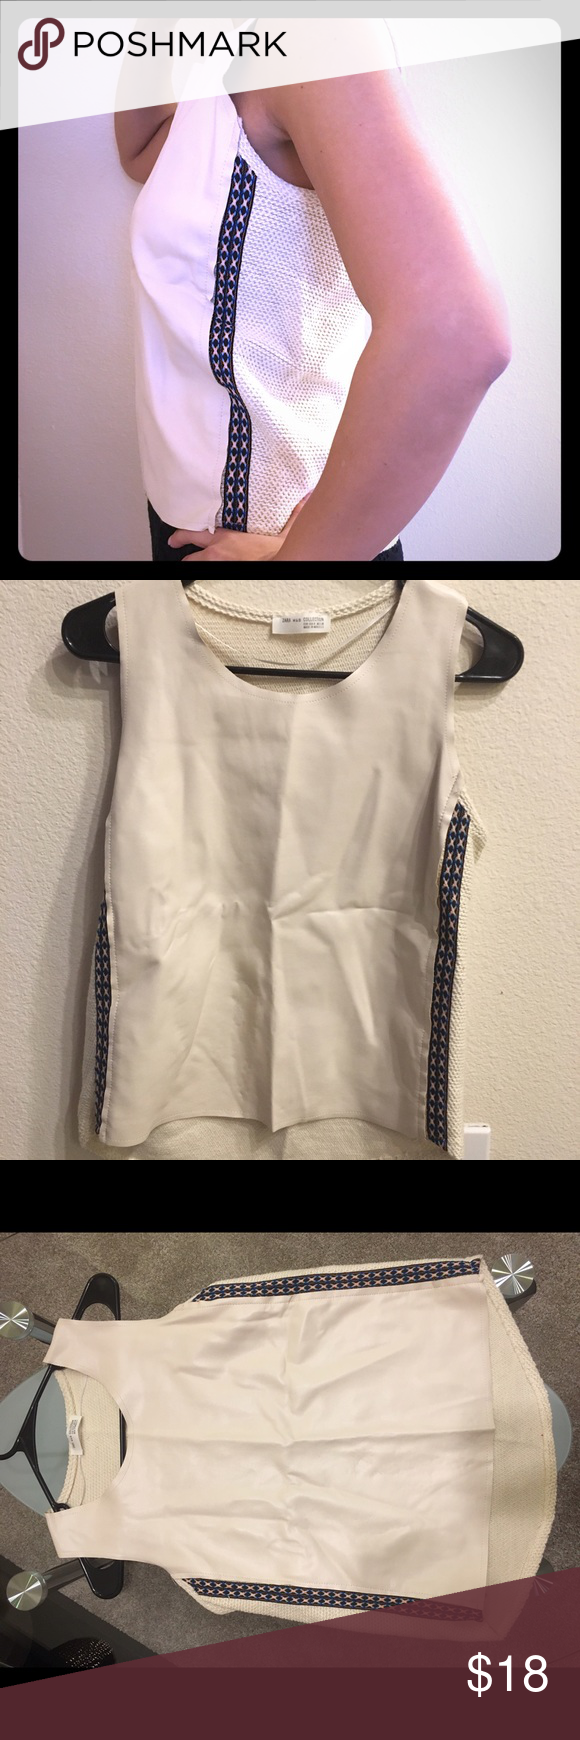 Sleeveless Zara leather top Sleeveless Zara cream leather top. Leather in the from fabric knit detailing in the back. Has blue and orange detailing stitch on both sides. Zara Tops Blouses